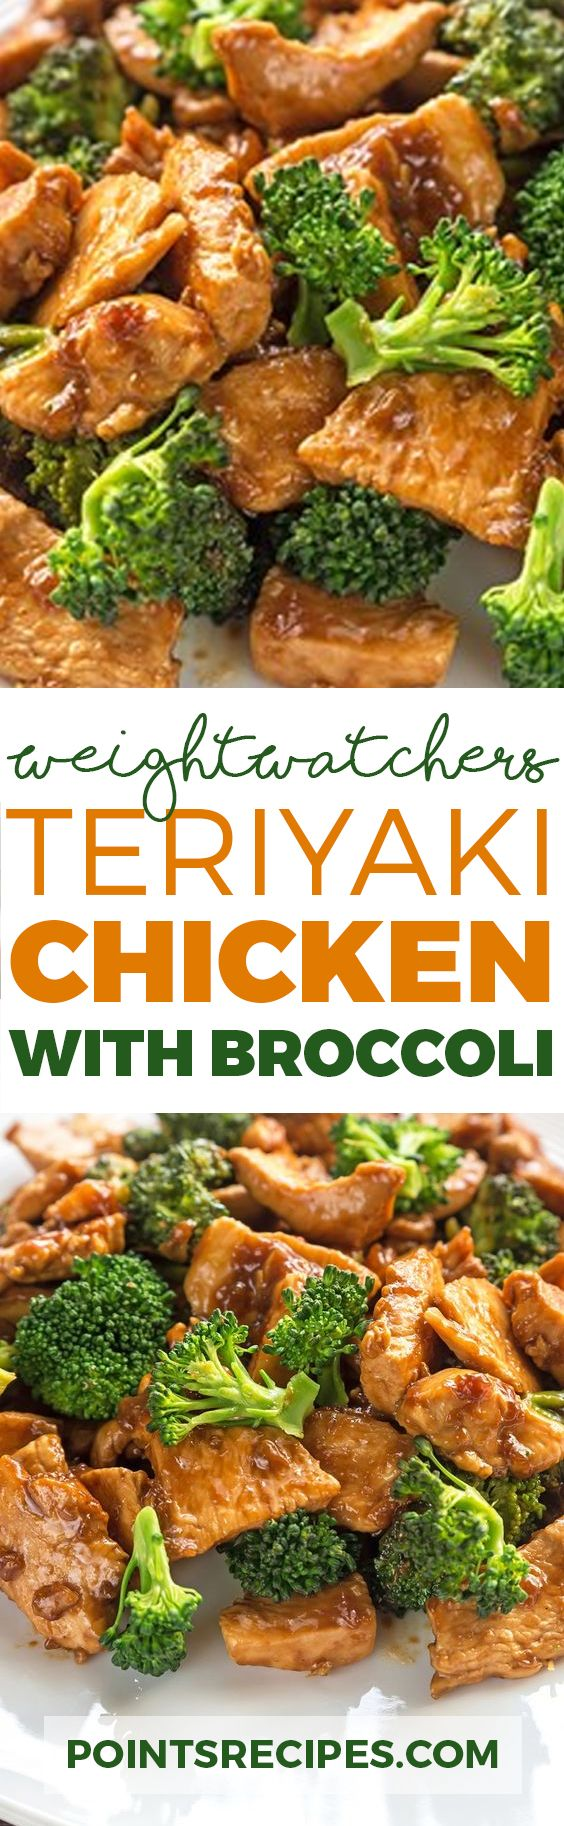 Teriyaki Chicken with Broccoli (Weight Watchers SmartPoints)